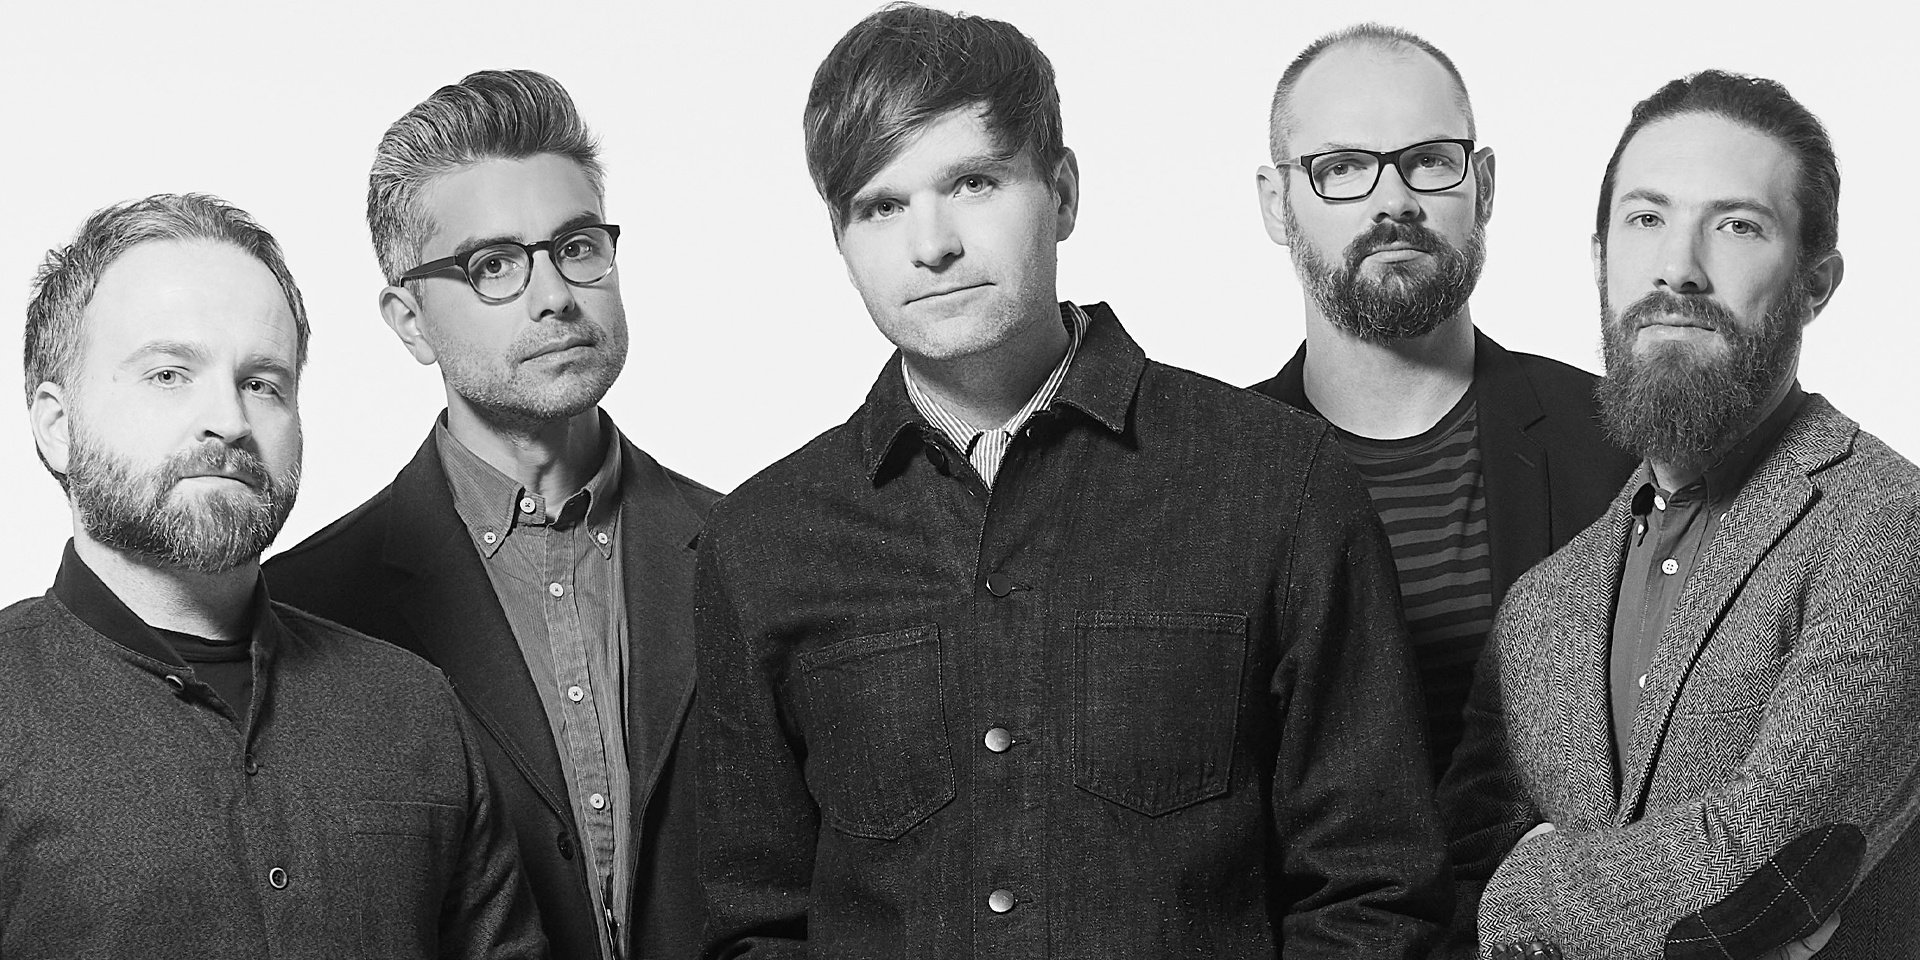 Death Cab for Cutie celebrate 15th anniversary of Plans with new video album – watch